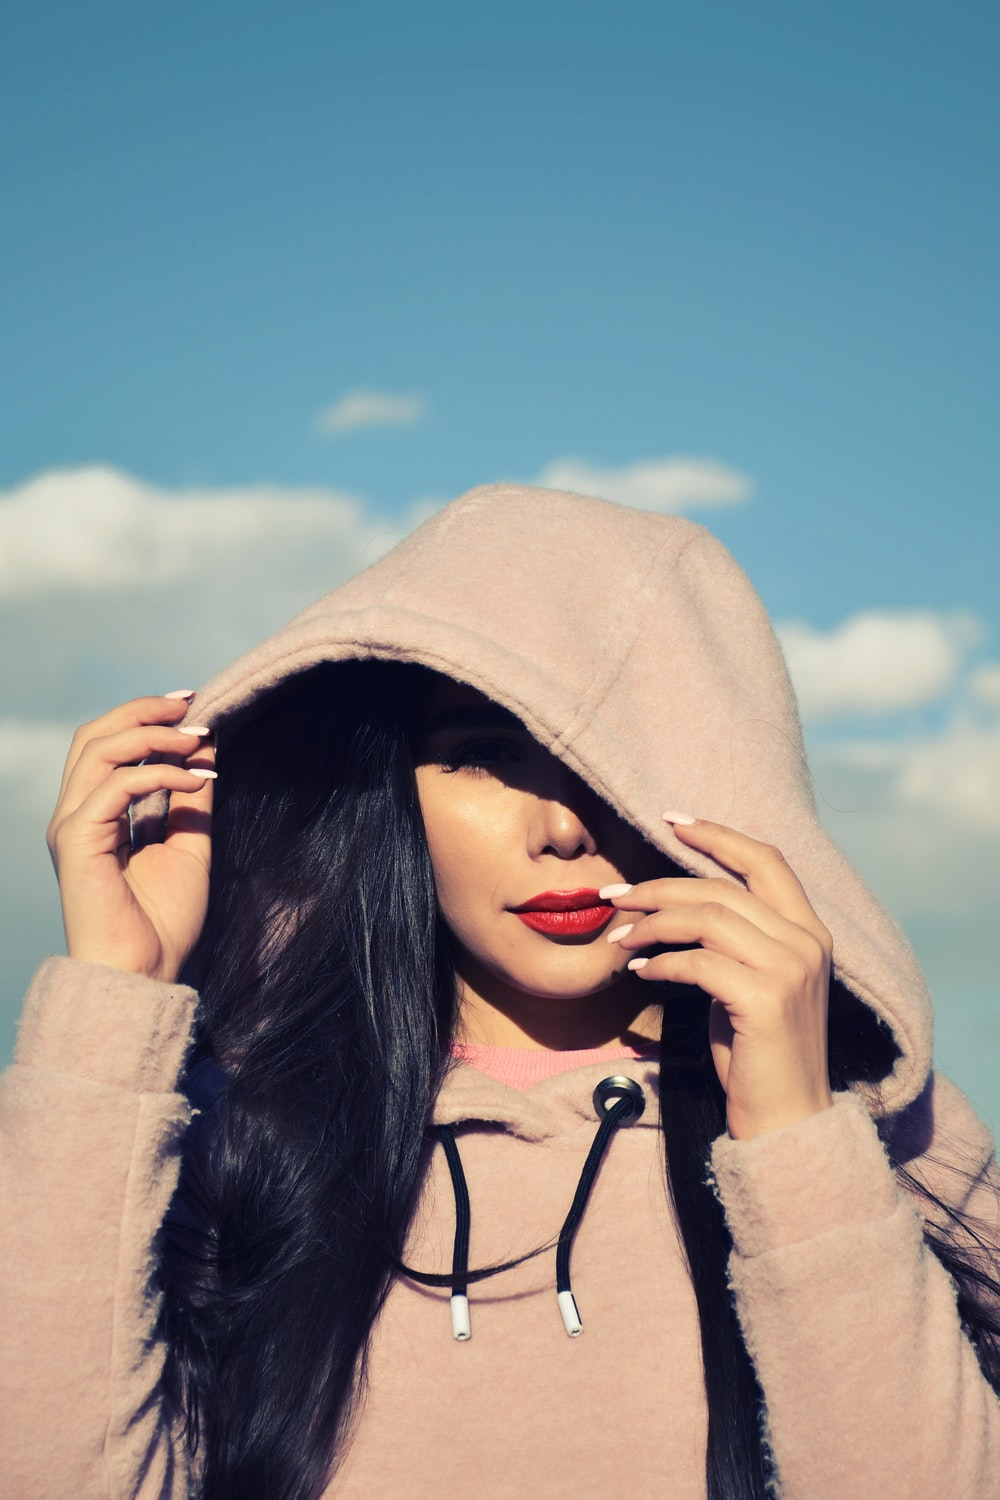 woman in gray hoodie covering her face with her hand